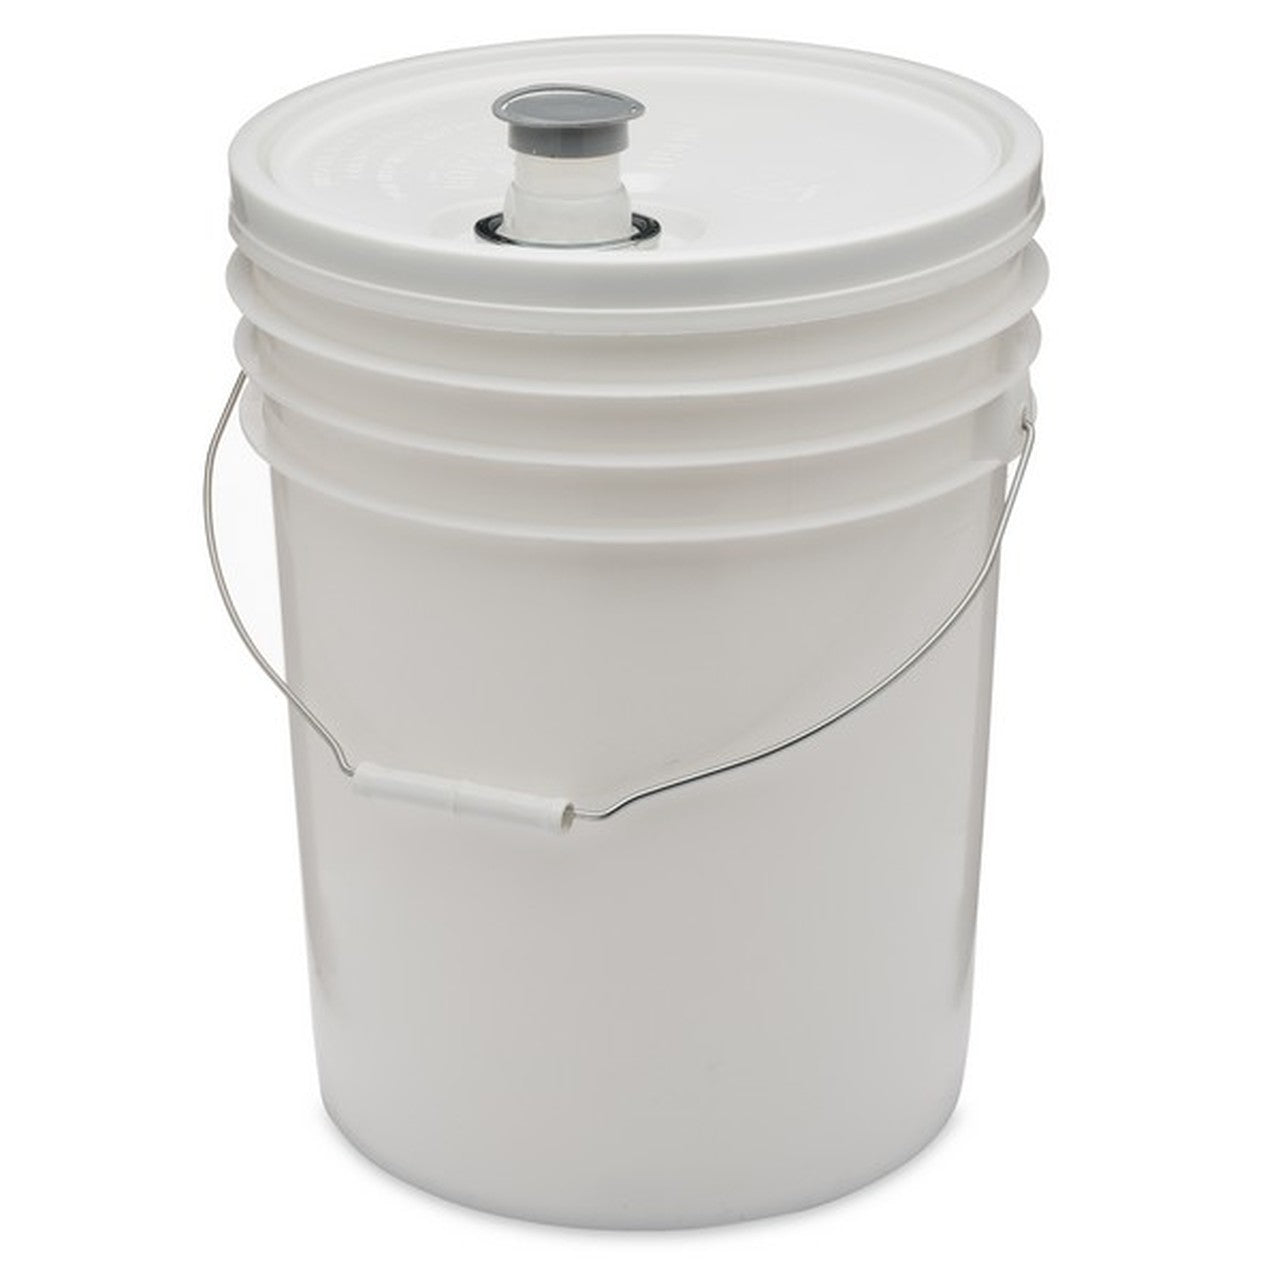 5 Gallon Bucket w/Pour Spout Lid